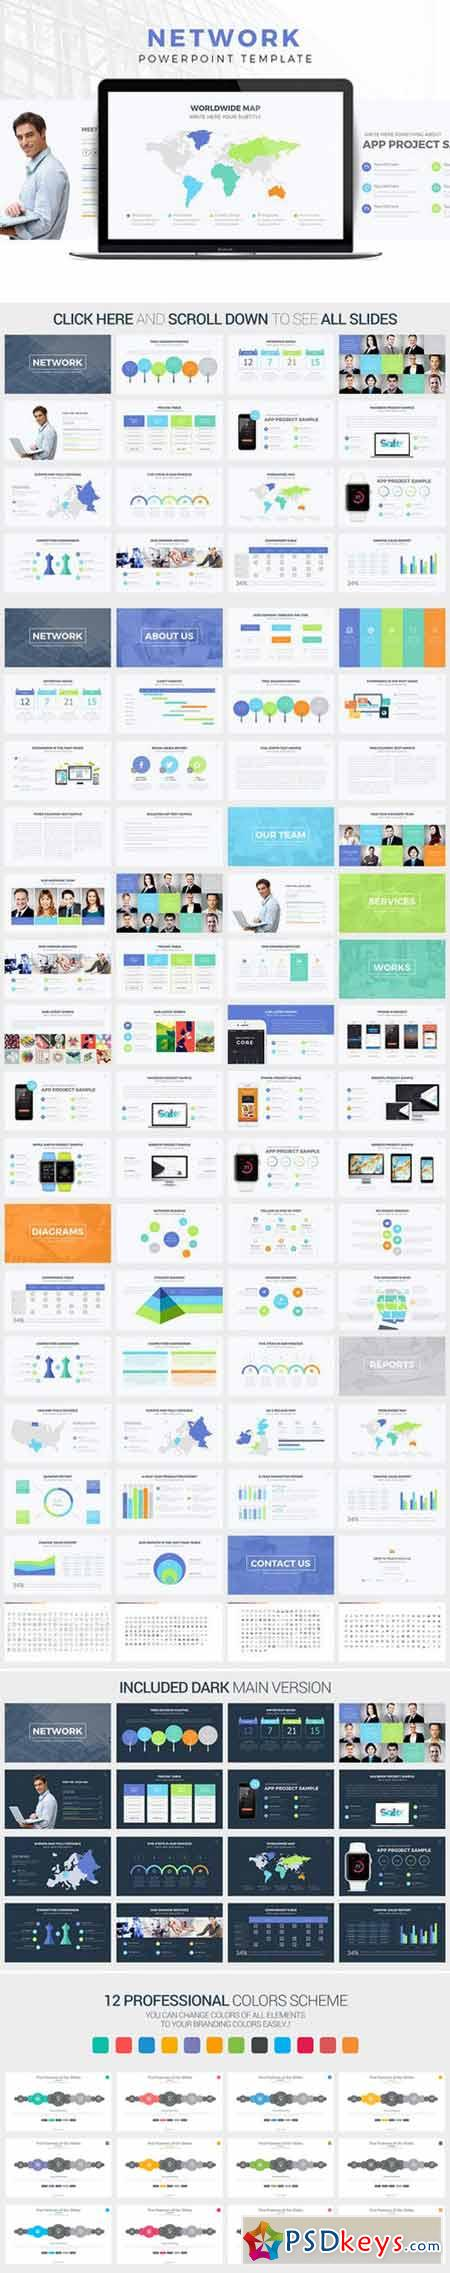 Network powerpoint template 48 best business powerpoint templates network powerpoint template 412041 free download photoshop toneelgroepblik Gallery